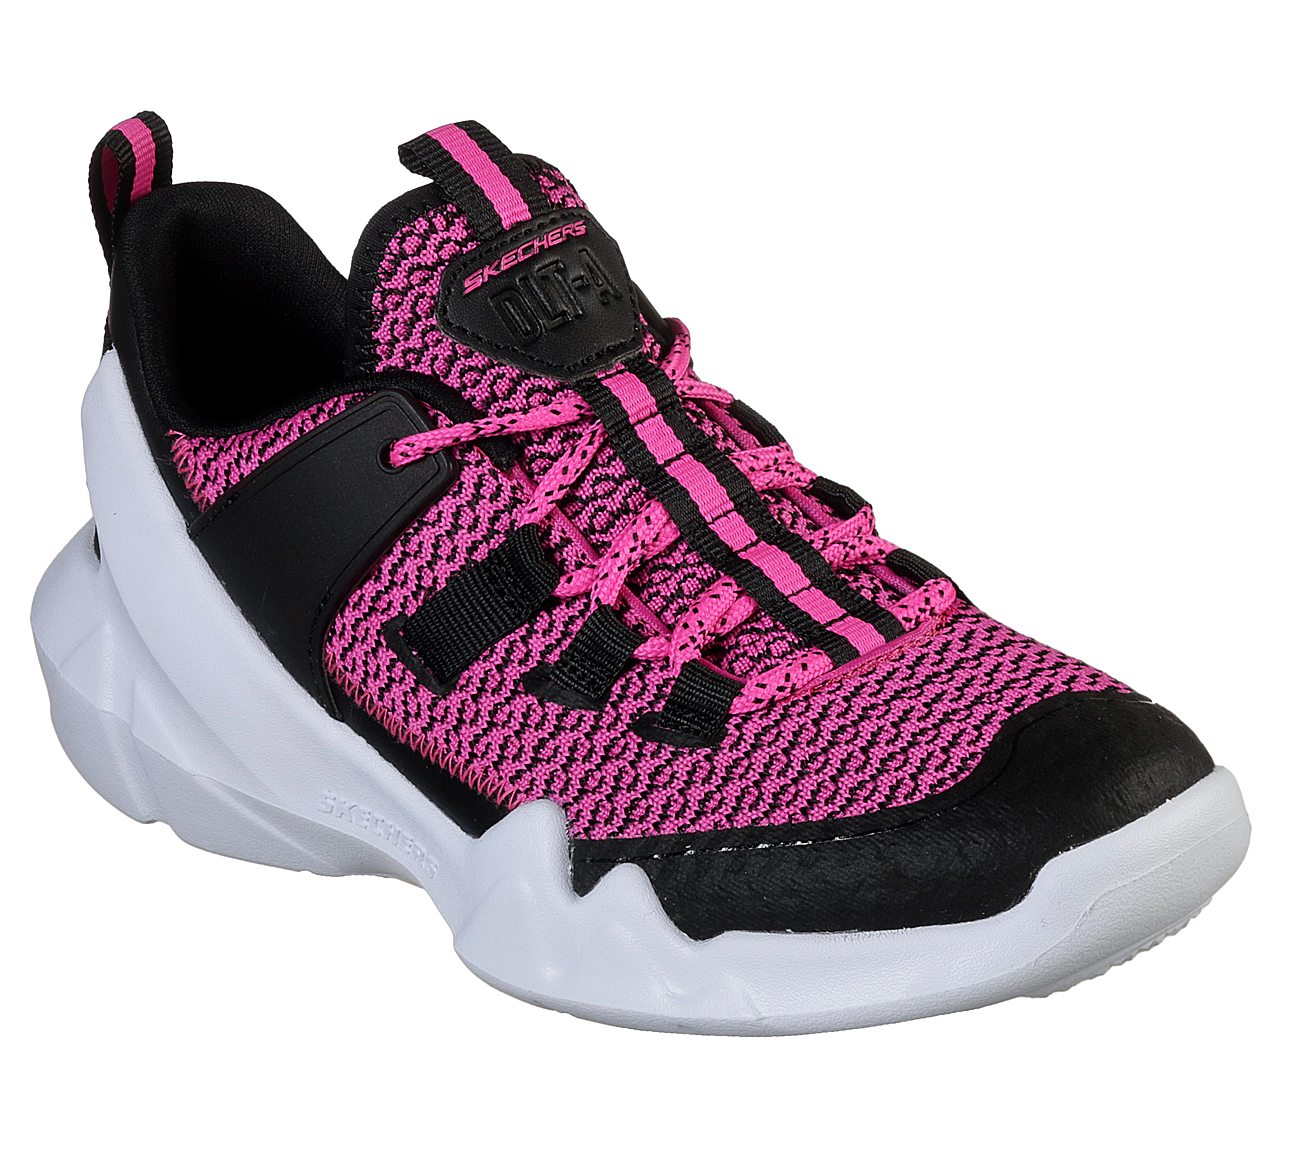 8cdb4f5c2711 Buy SKECHERS D Lites DLT-A - Locus Skechers D Lites Shoes only £44.00